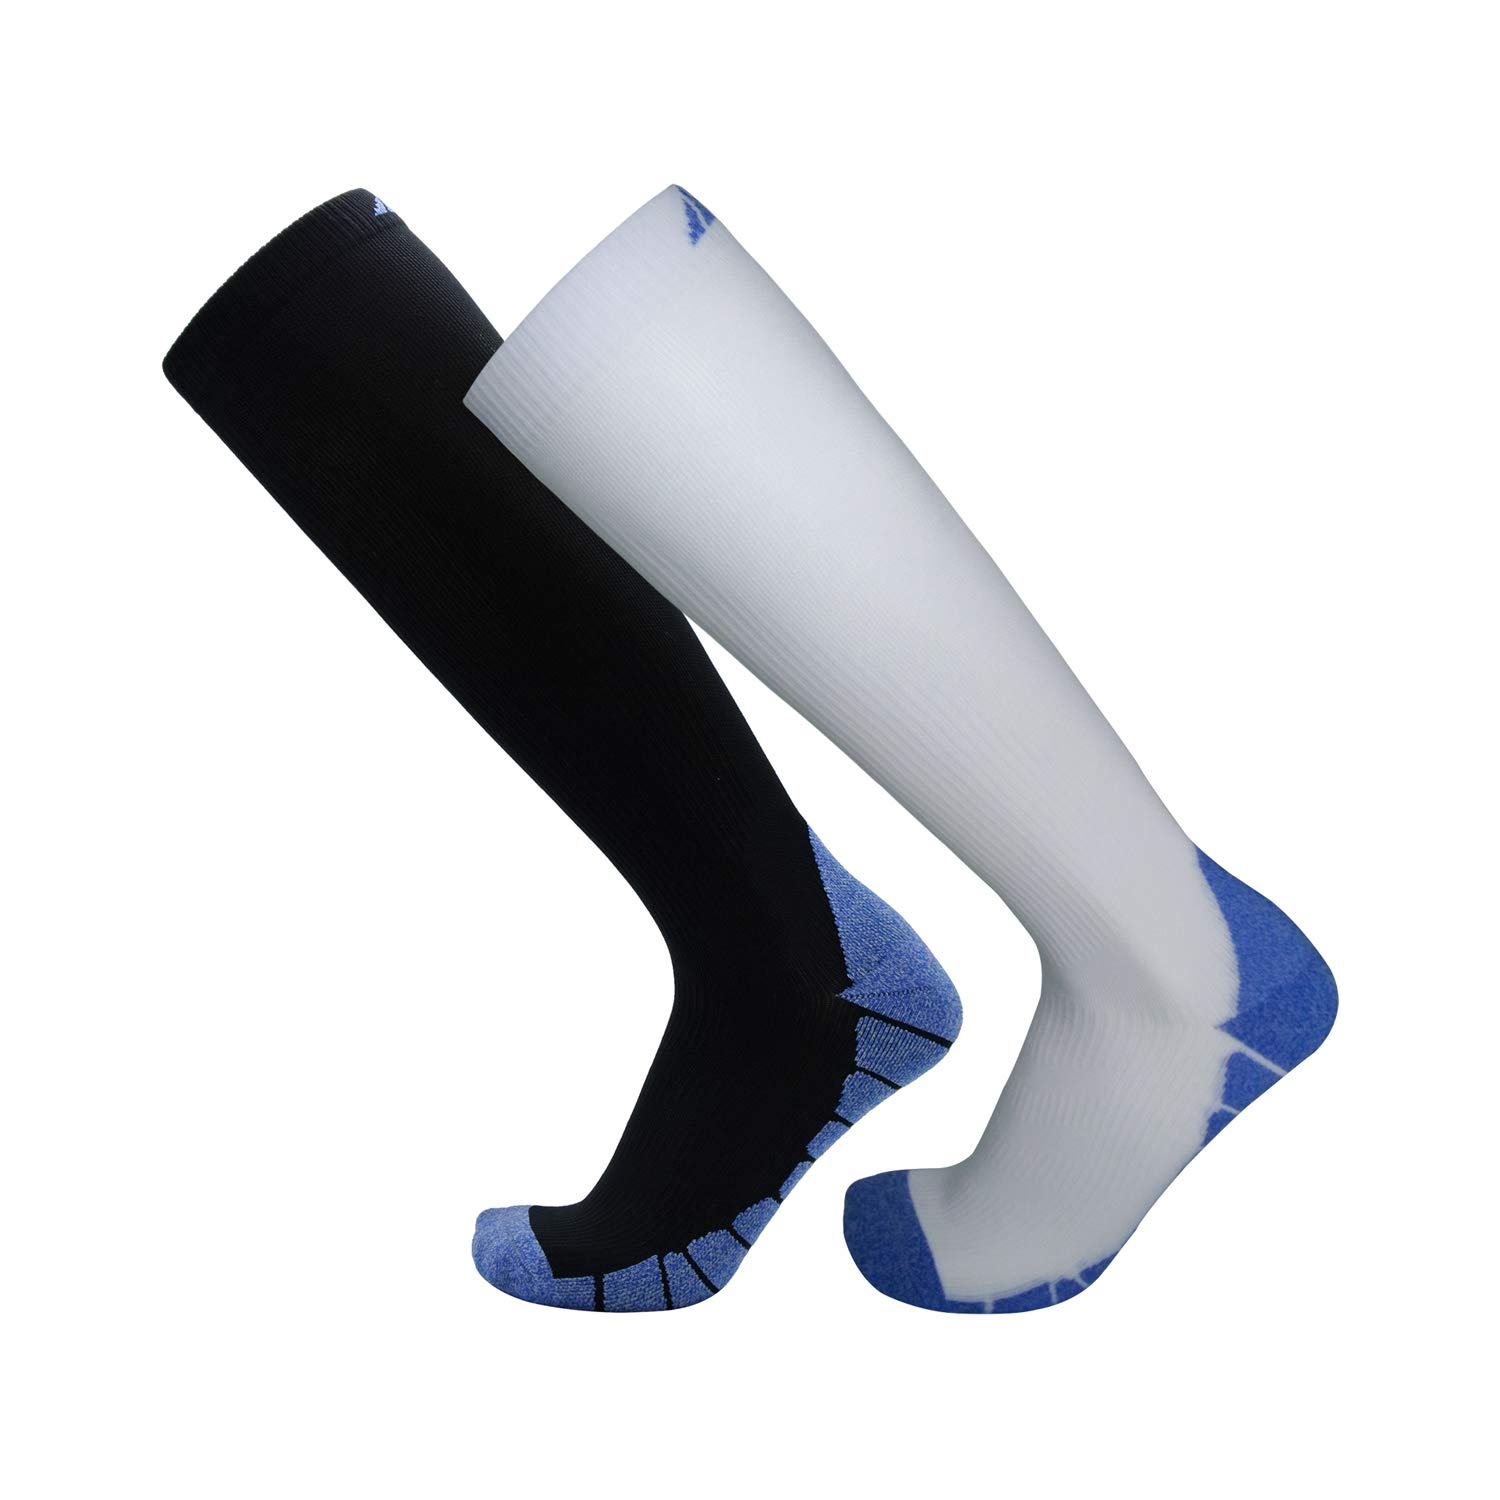 Amazon.com: Compression Socks Women & Men - Relief Foot Ankle Pain & Calf  Leg Swelling - Cushioned Athletic Fit Support Sports Running Cycling -  Improve ...